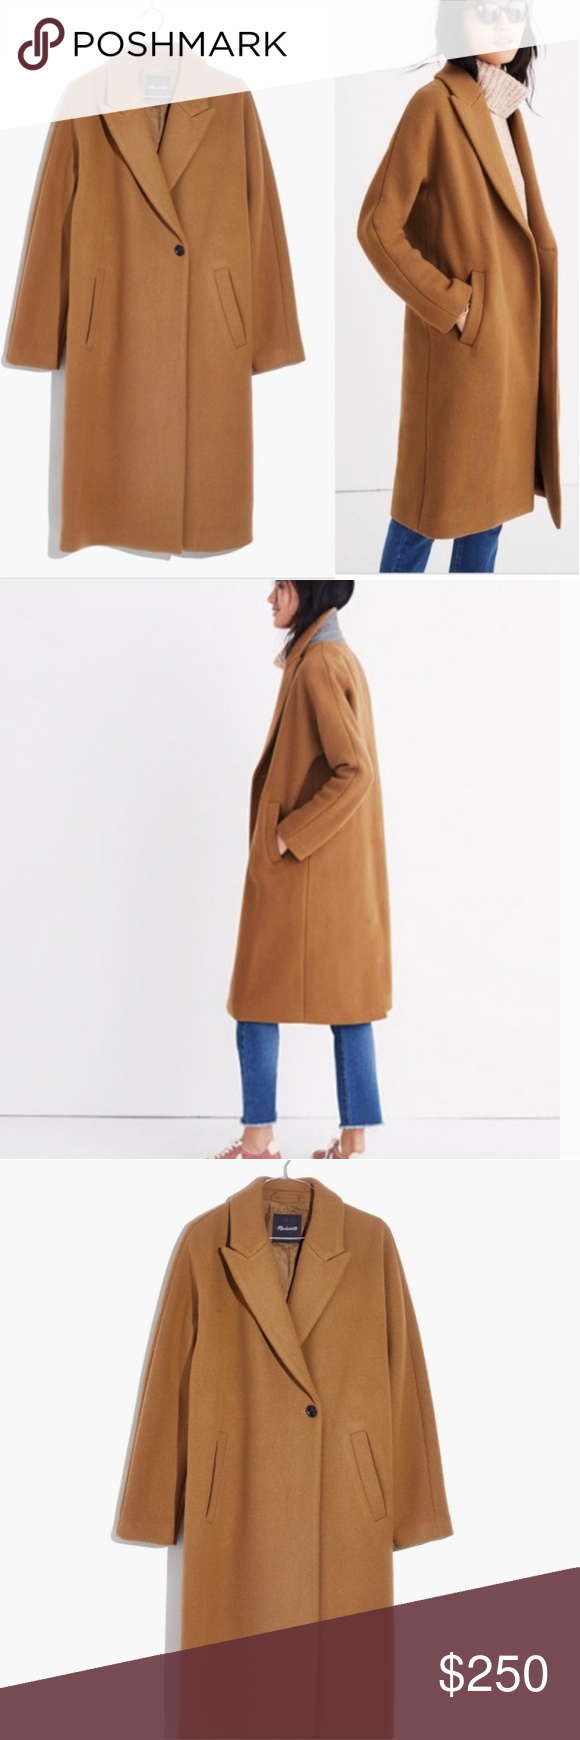 Madewell Atlas Cocoon Coat in burnished cedar New with